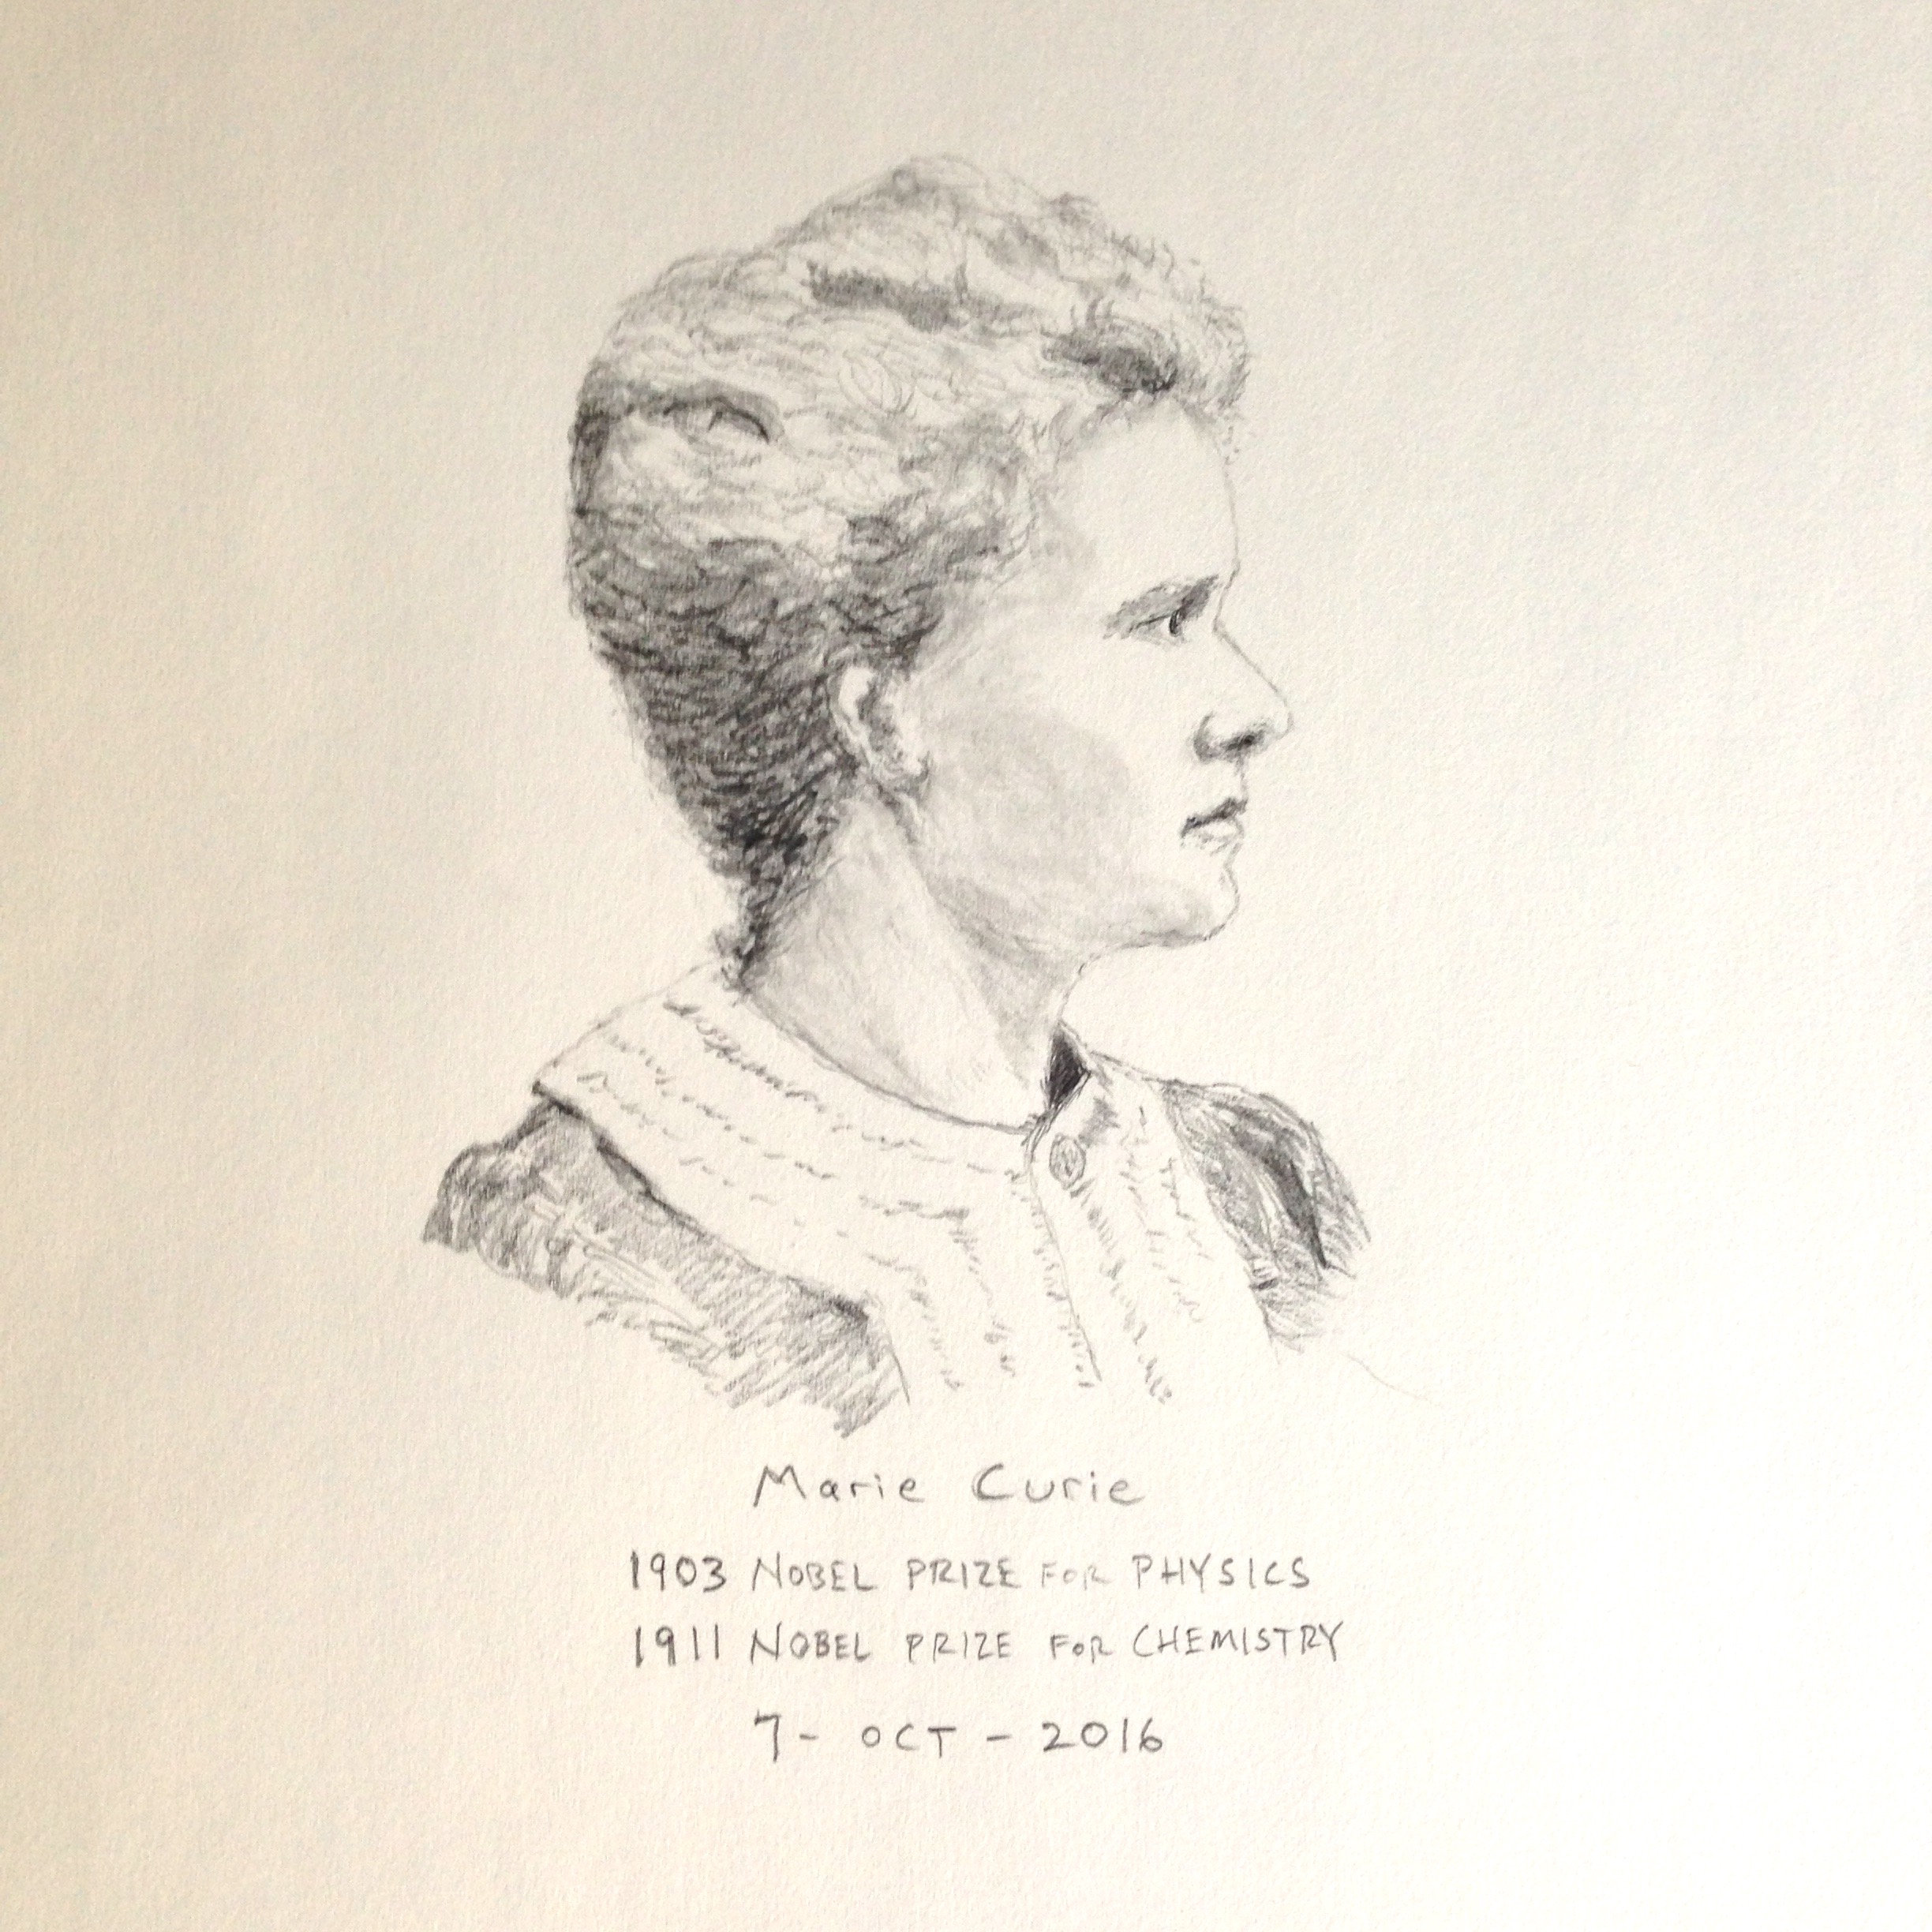 Pencil drawing of Marie Curie